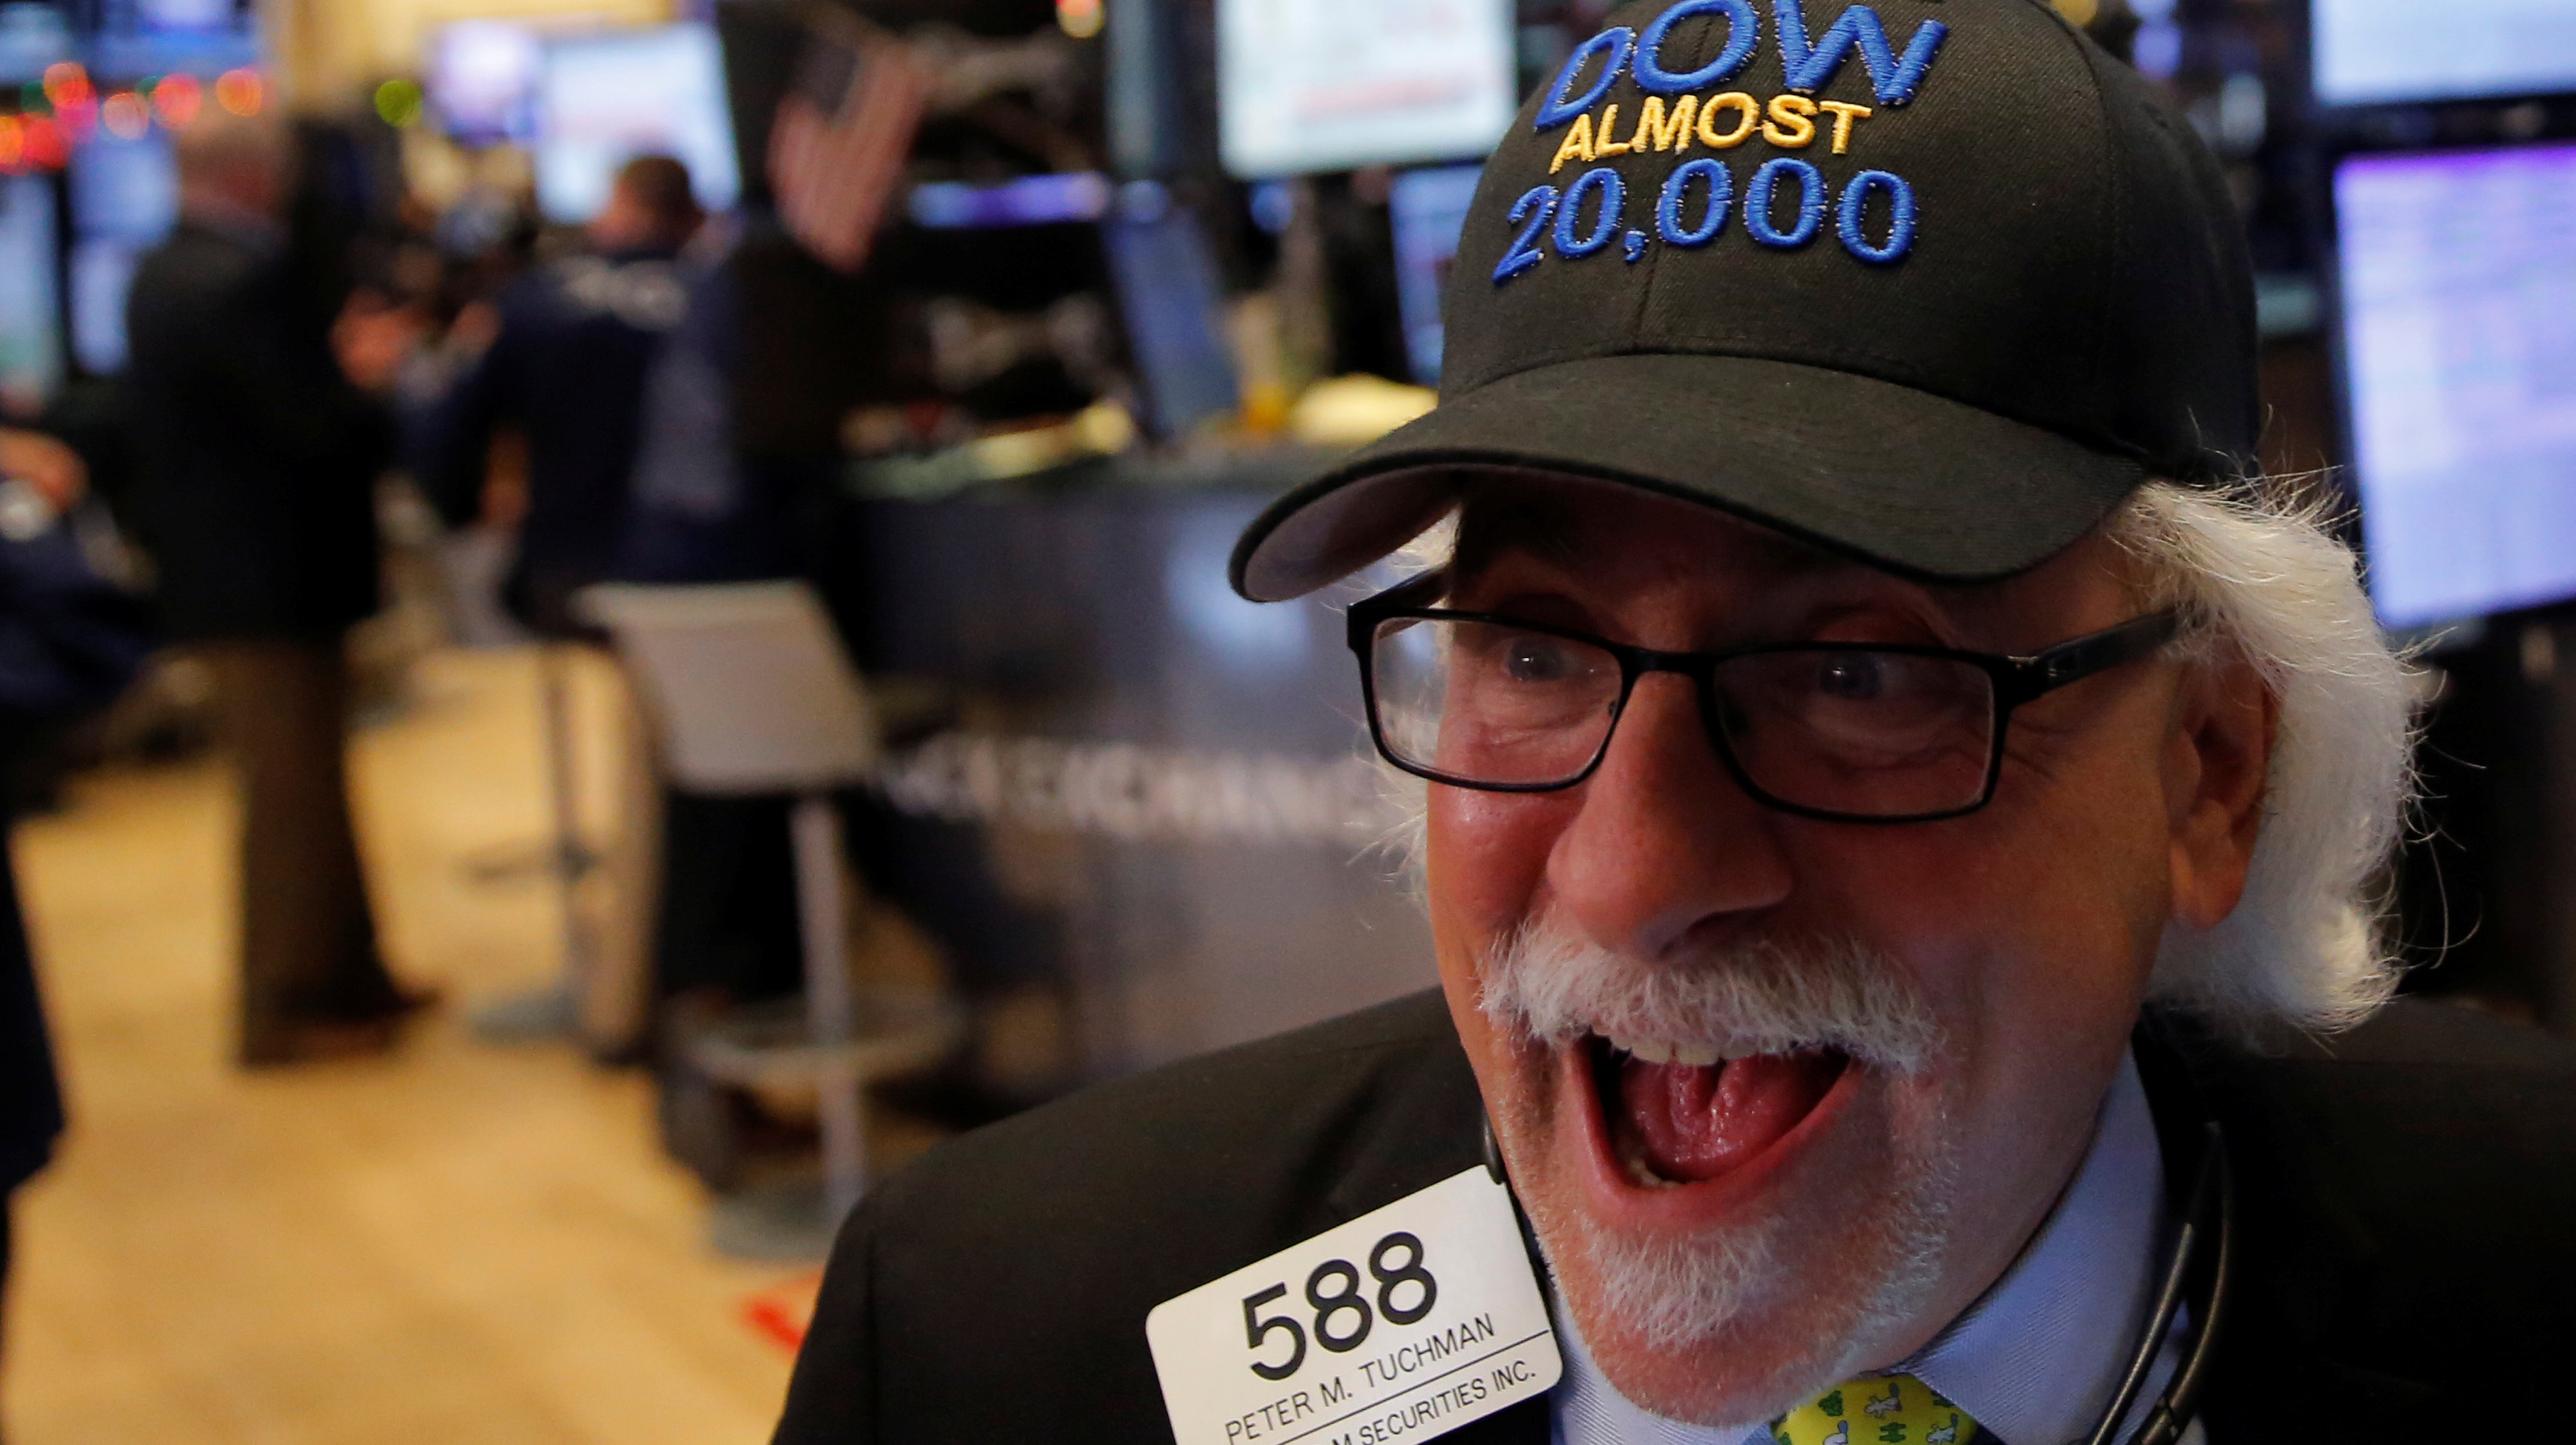 New York Stock Exchange trader gets excited about the Dow Jones almost reaching 20,000